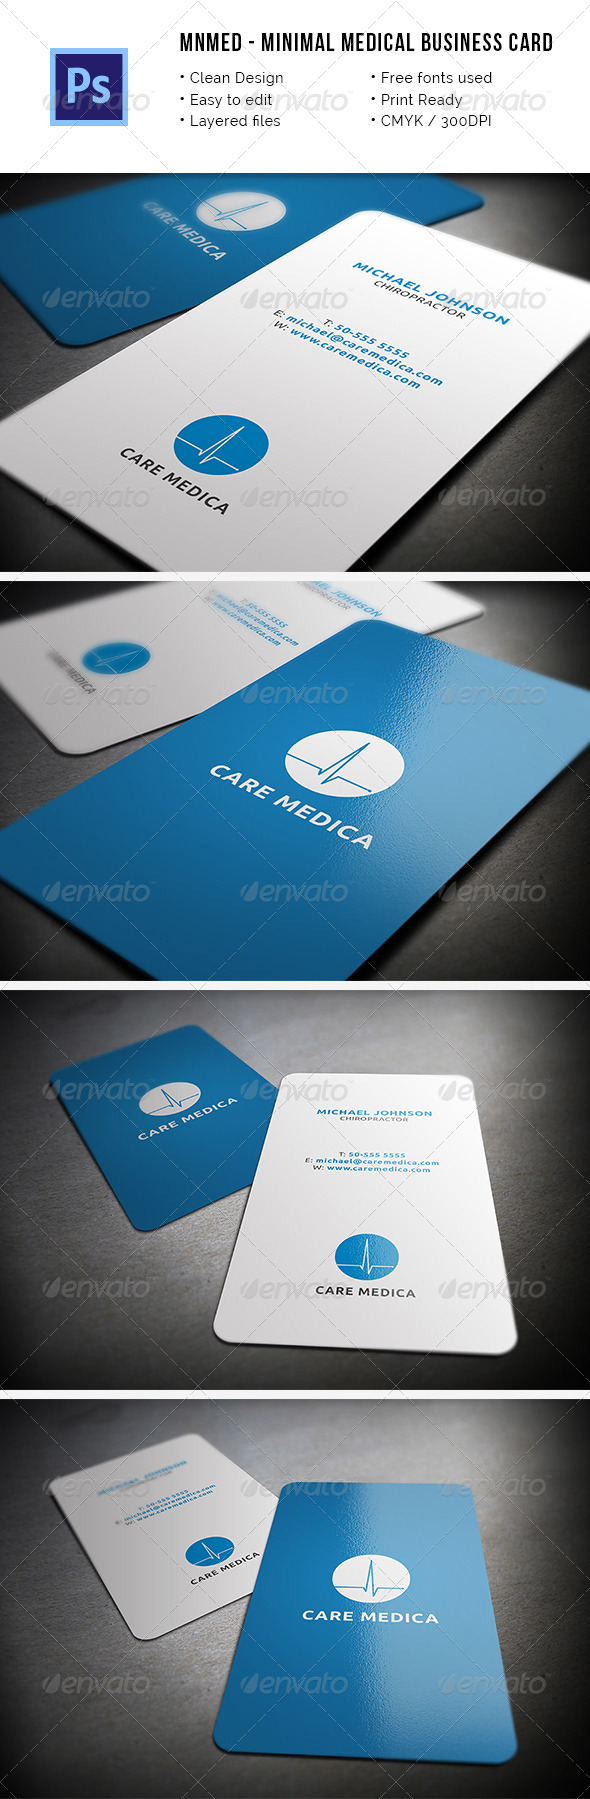 MnMed - Minimal Medical Business Card - Industry Specific Business Cards